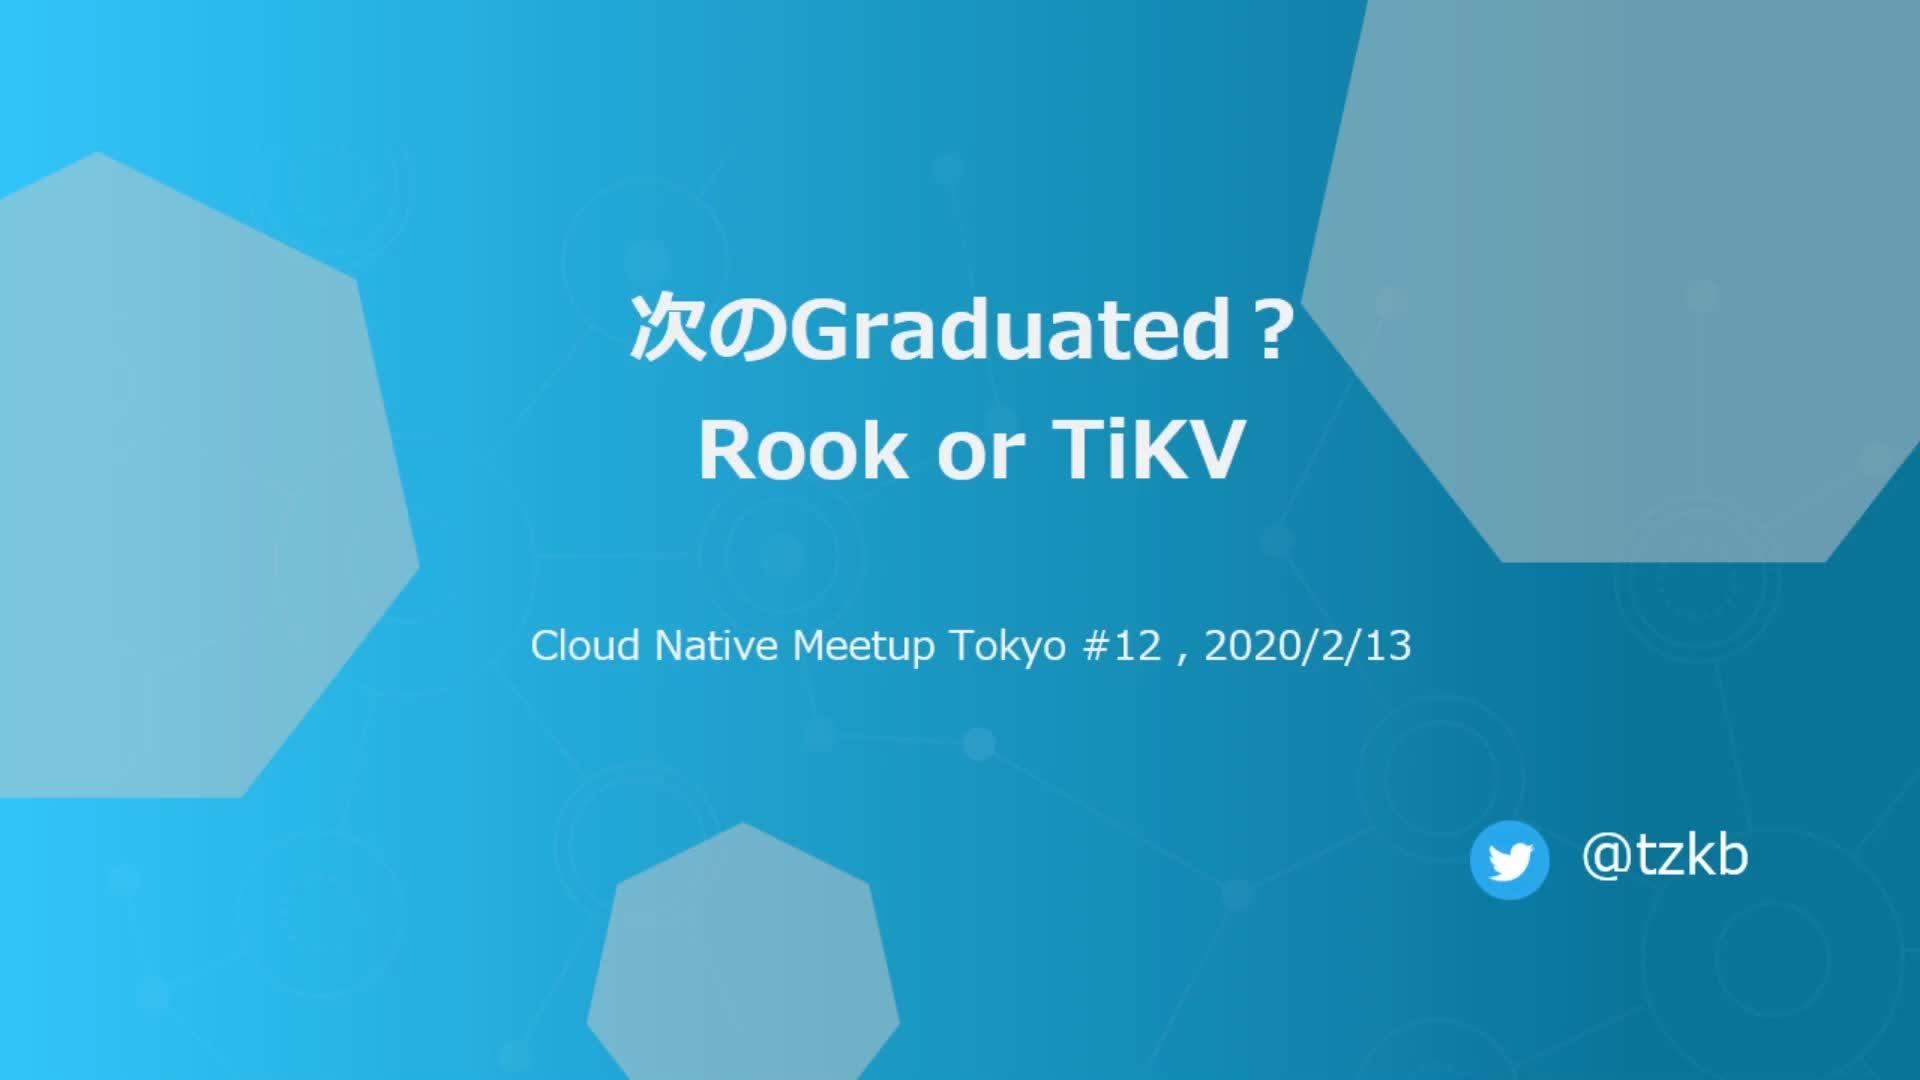 次のGraduated?Rook or TiKV